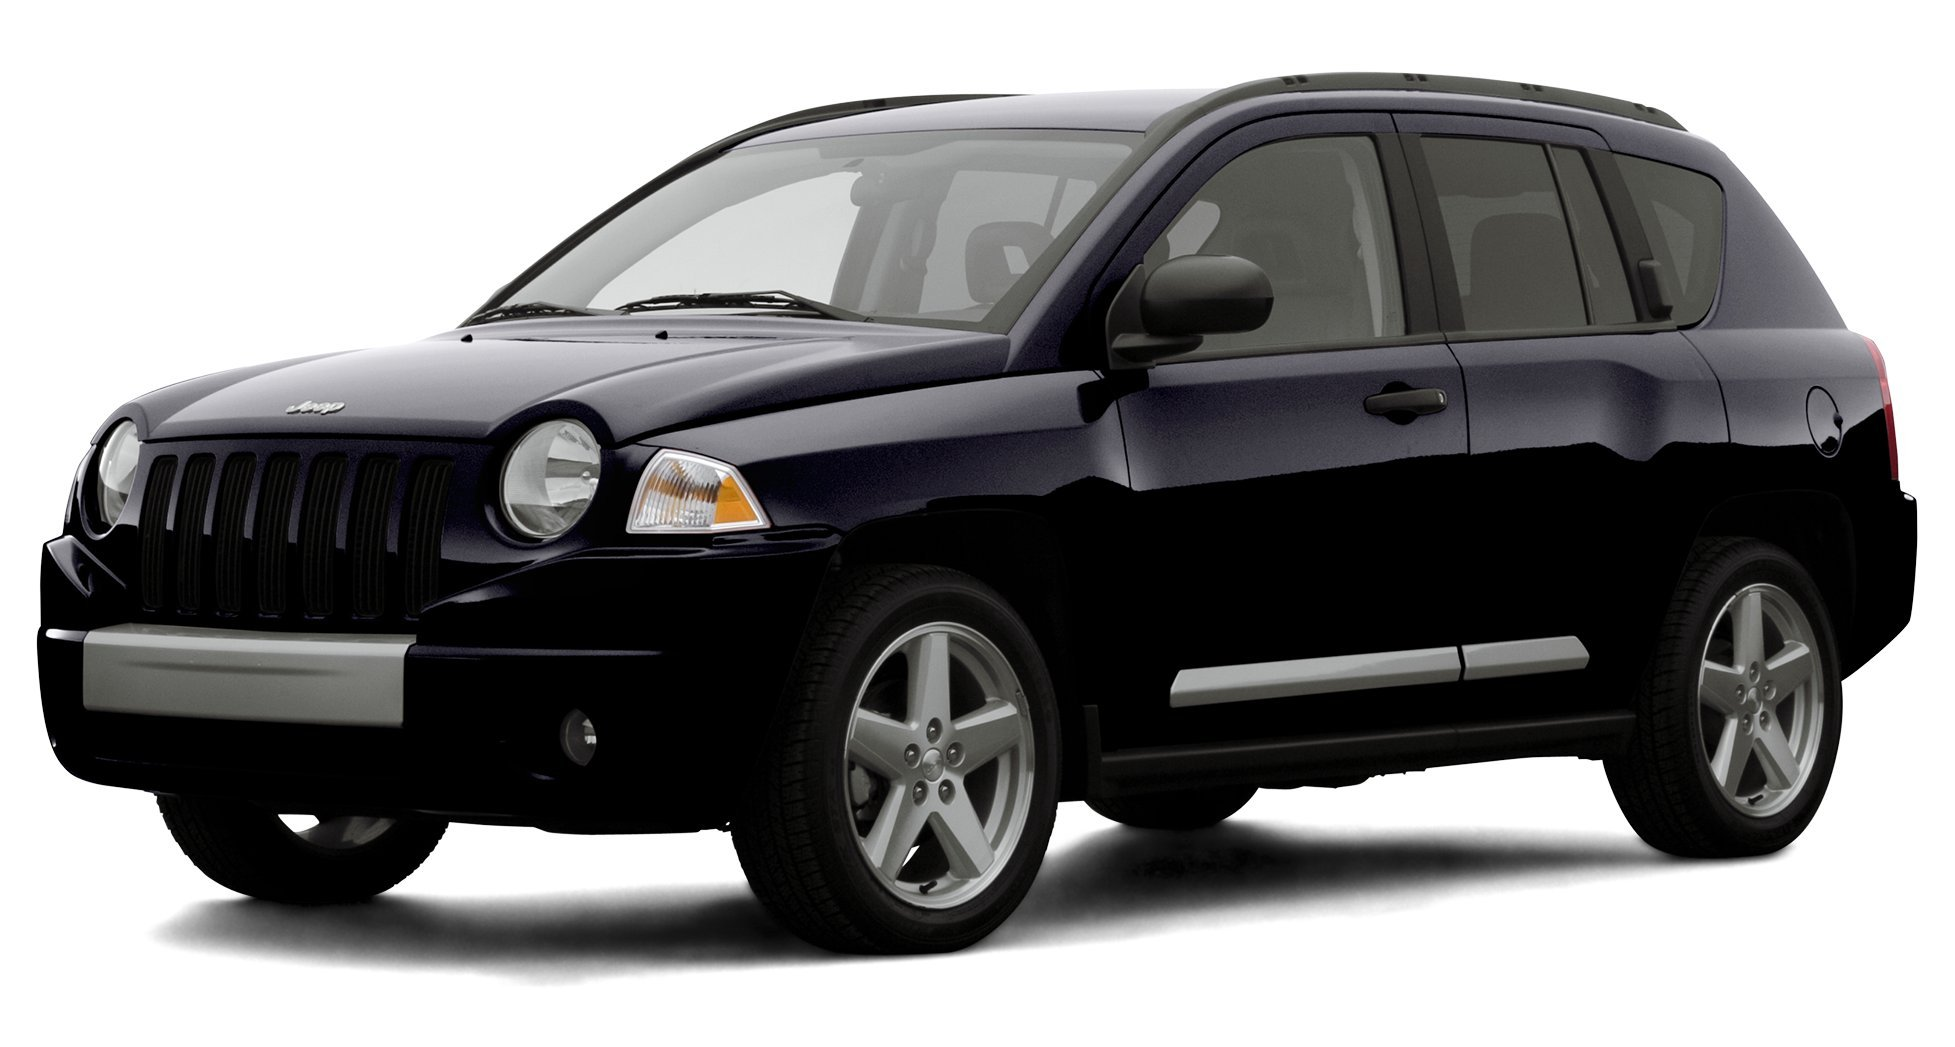 2007 jeep compass reviews images and specs. Black Bedroom Furniture Sets. Home Design Ideas